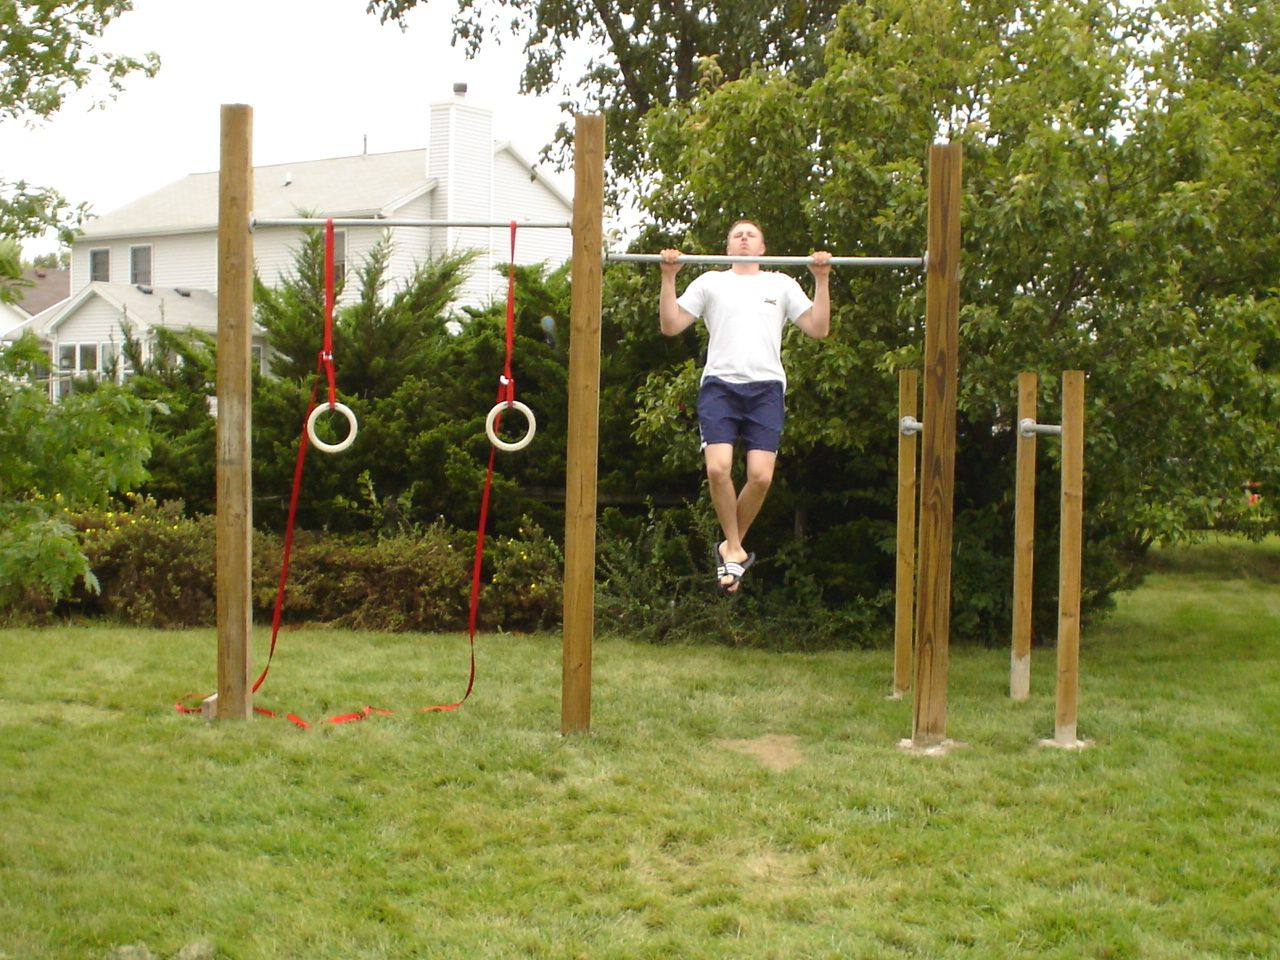 home made olympic rings station - Google Search   Home Gym ...